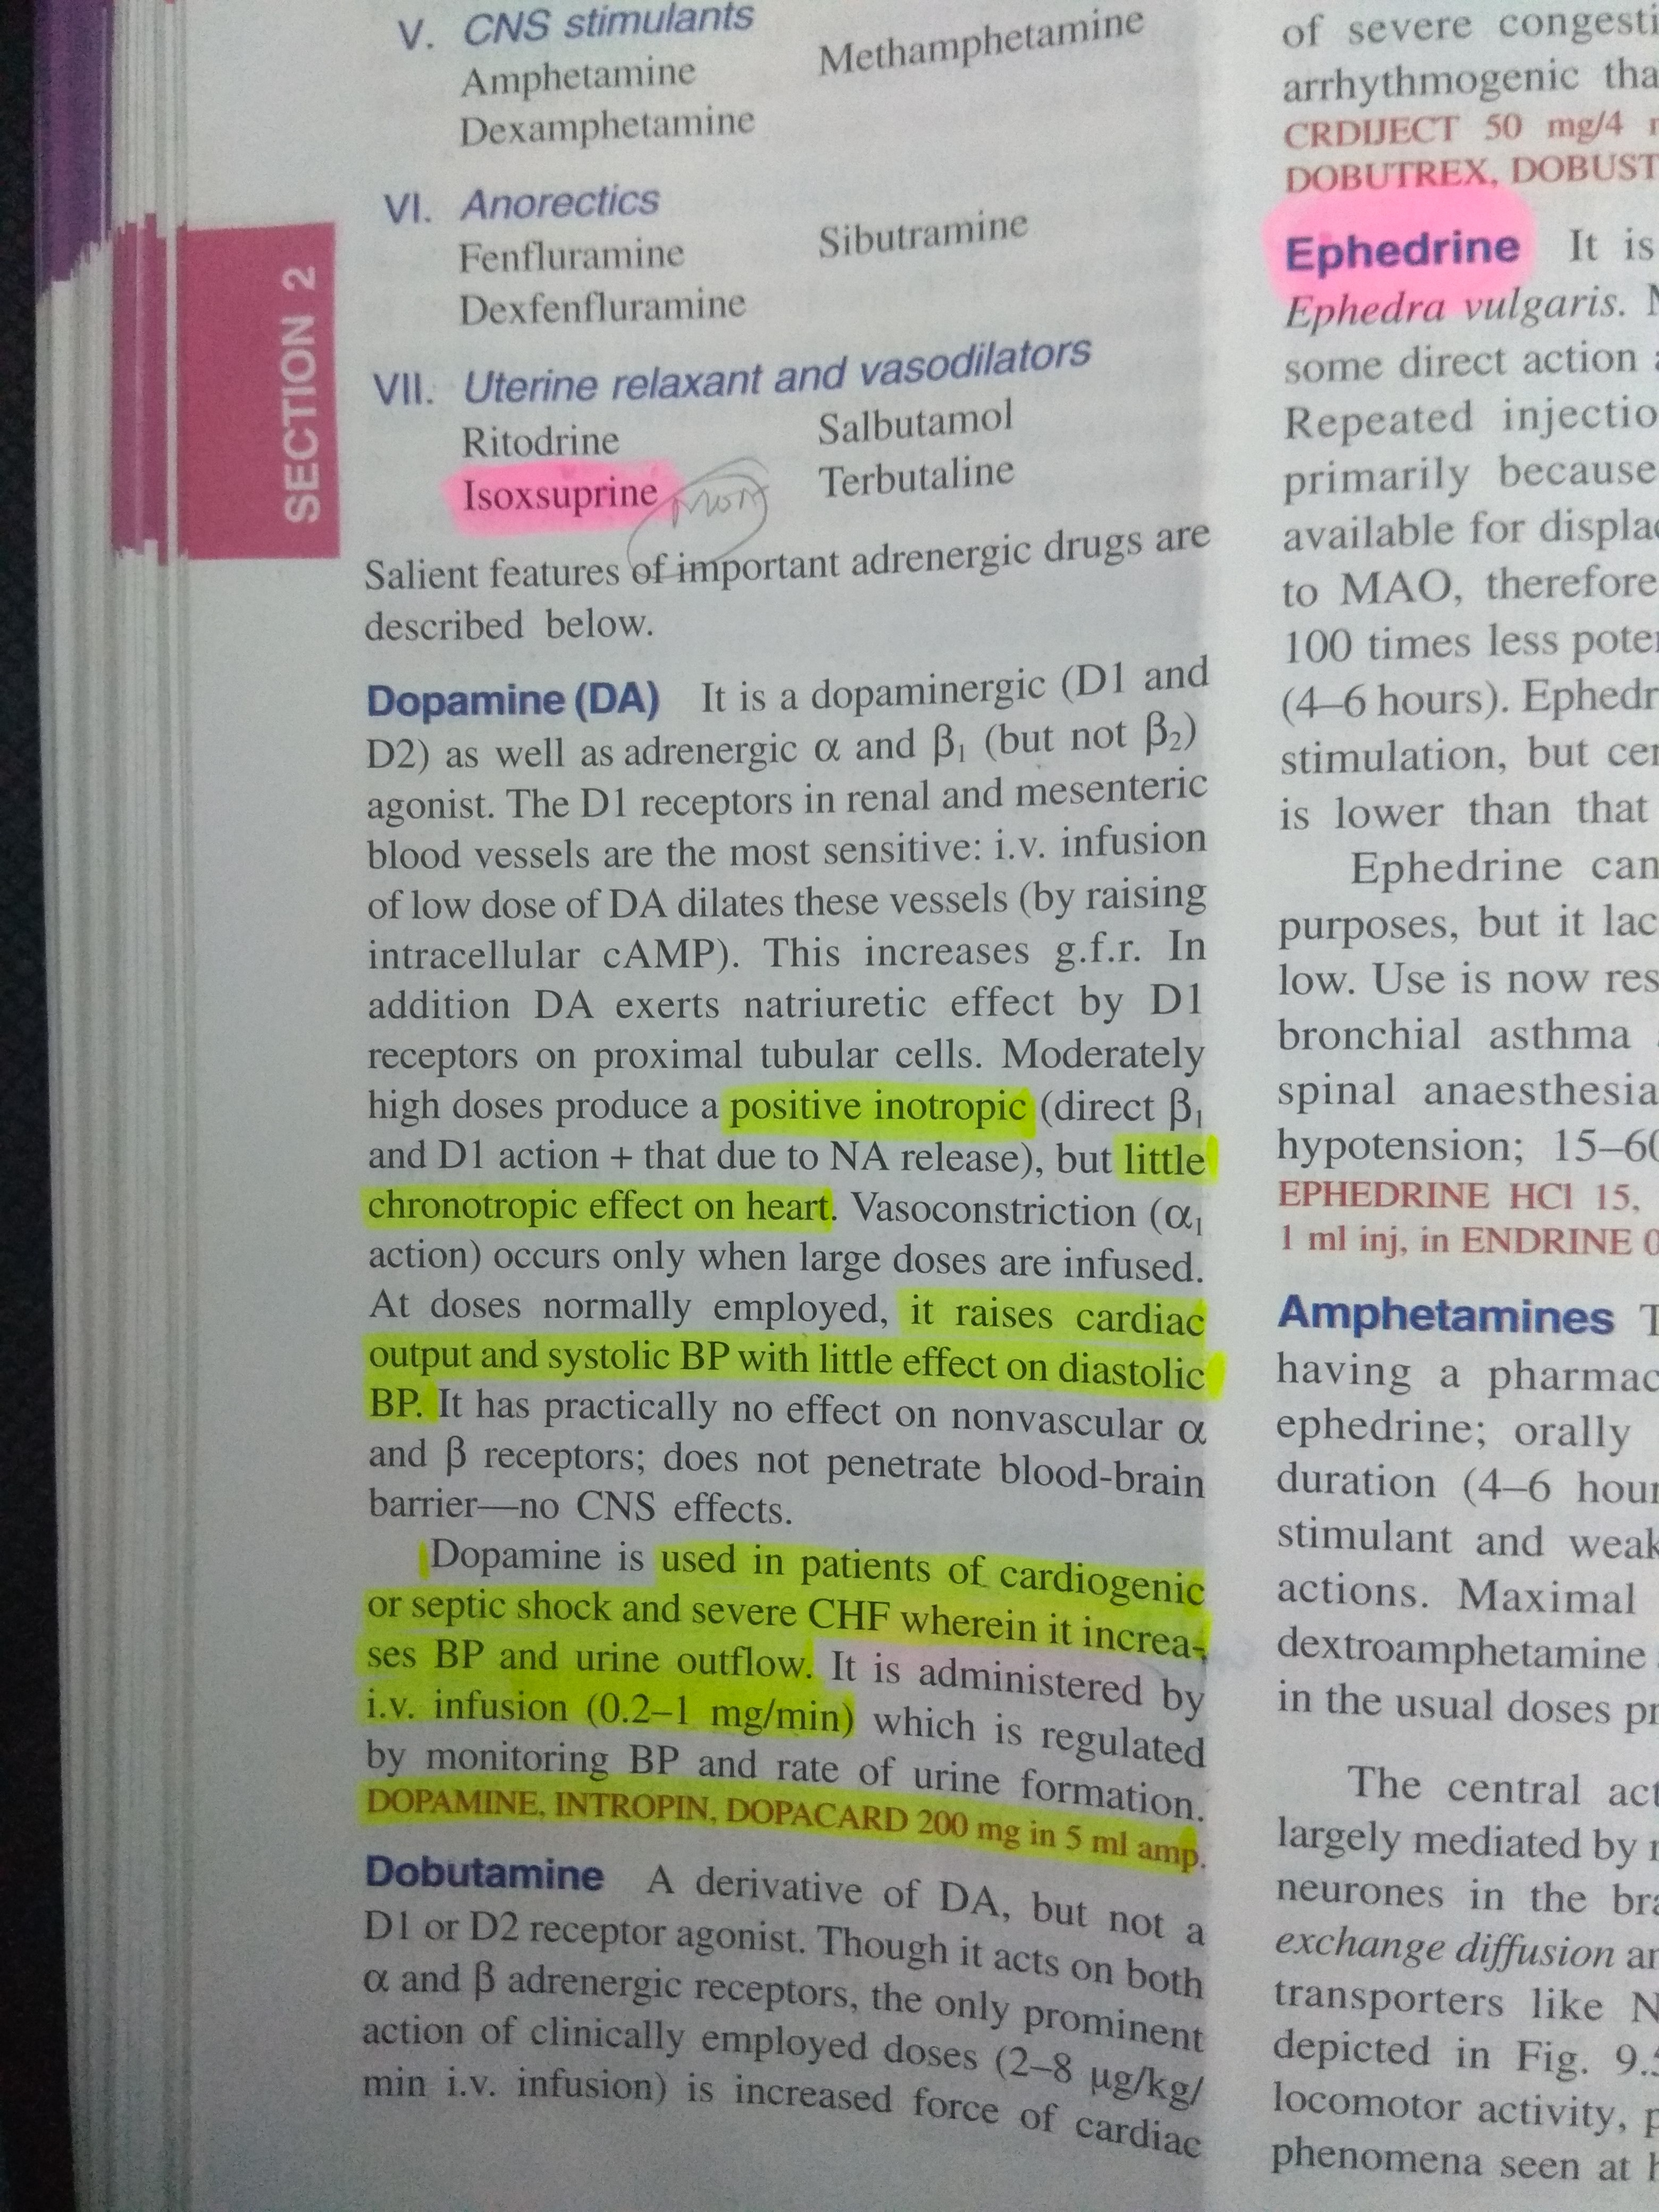 Why dopamine is given in hypovolemic shock rather than